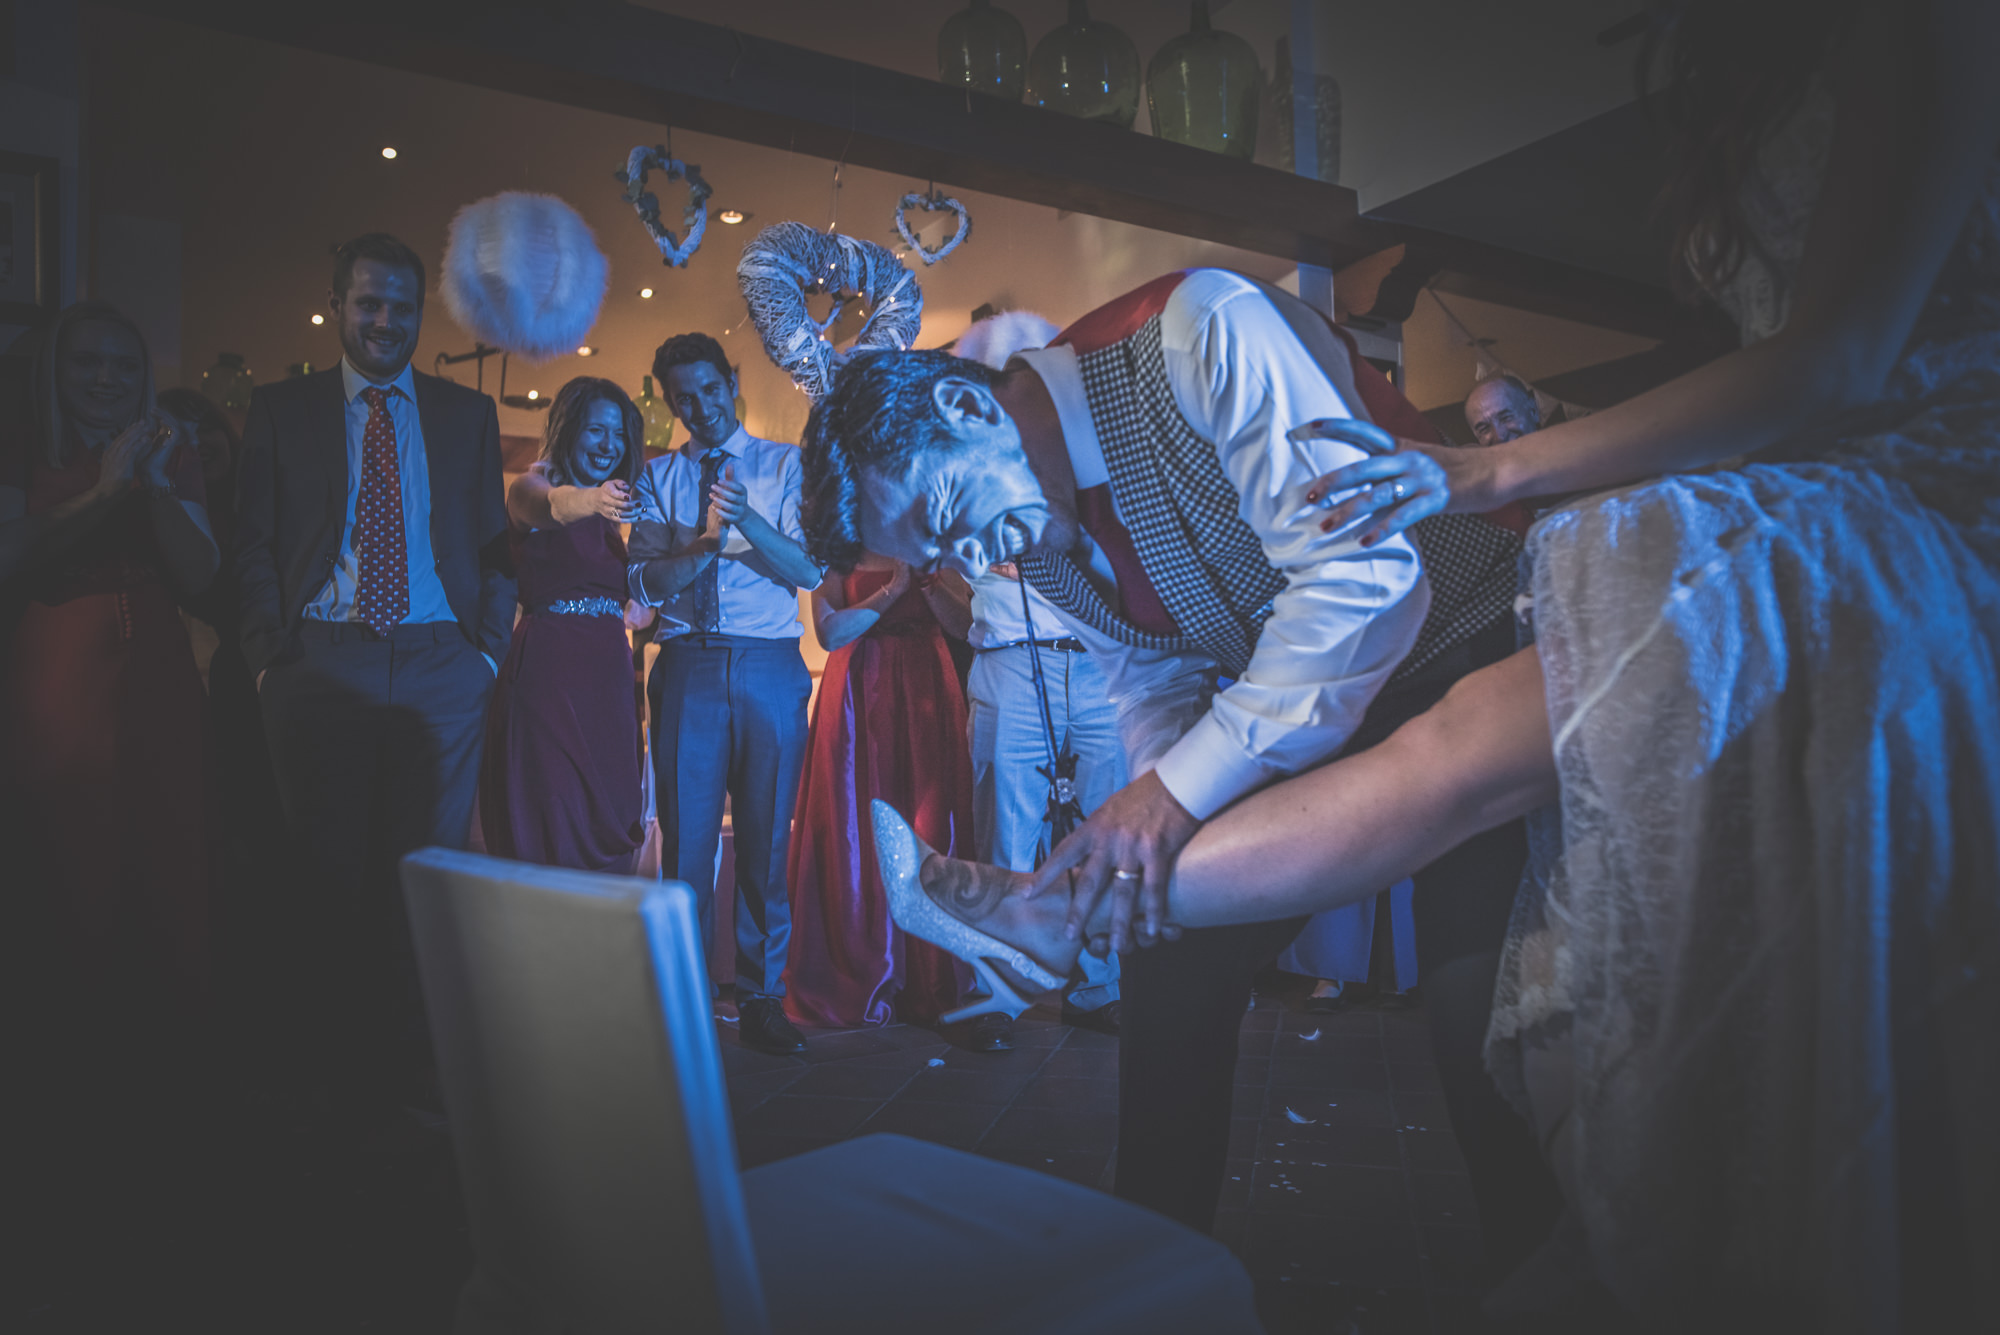 Amy-and-Andres-destination-wedding-in-Potes-Spain-Manu-Mendoza-Wedding-Photography-621.jpg